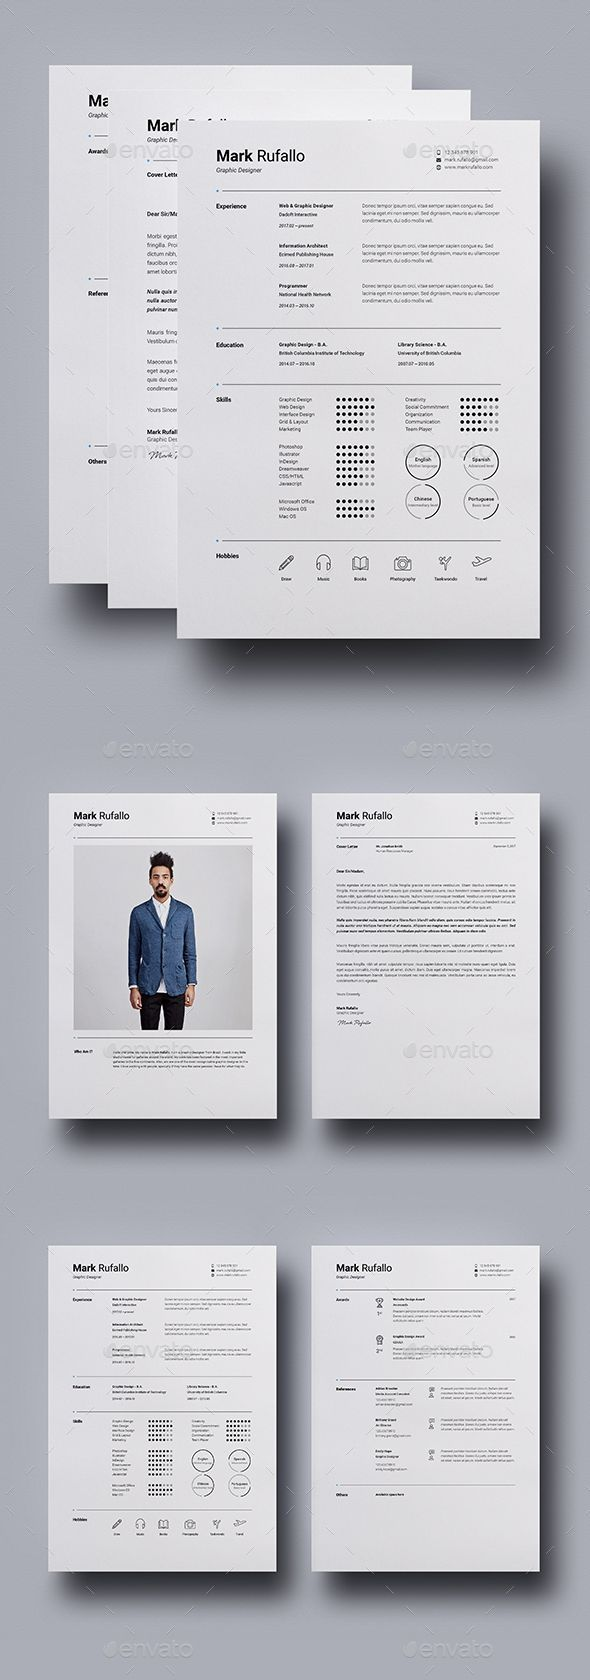 Resume  Cv Template Indesign Indd Ms Word  Us Letter  A